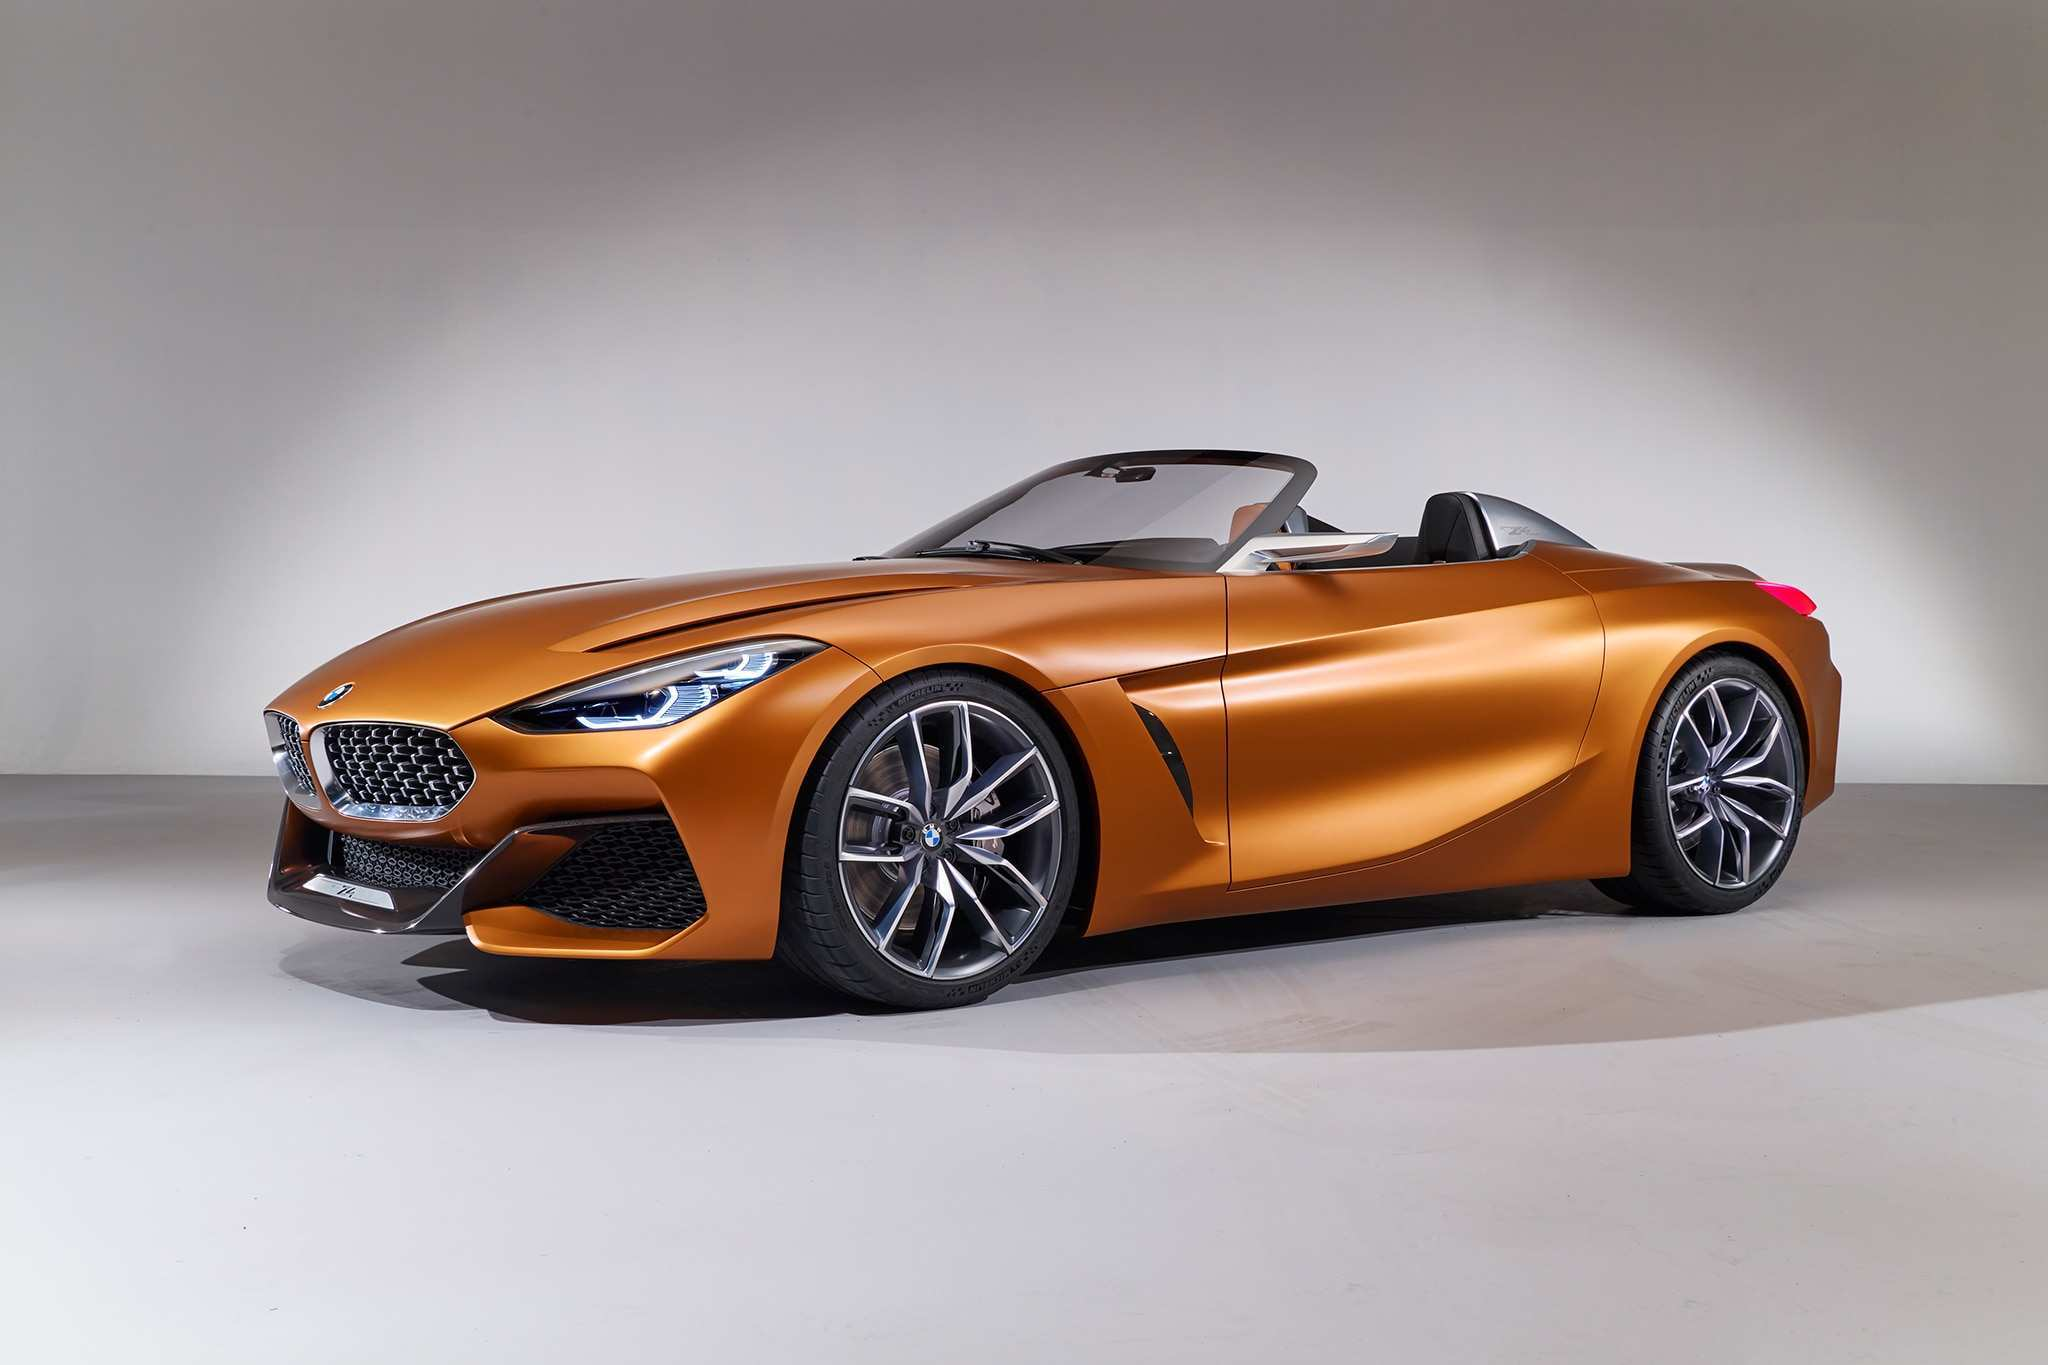 15 New 2019 Bmw Sports Car Overview by 2019 Bmw Sports Car